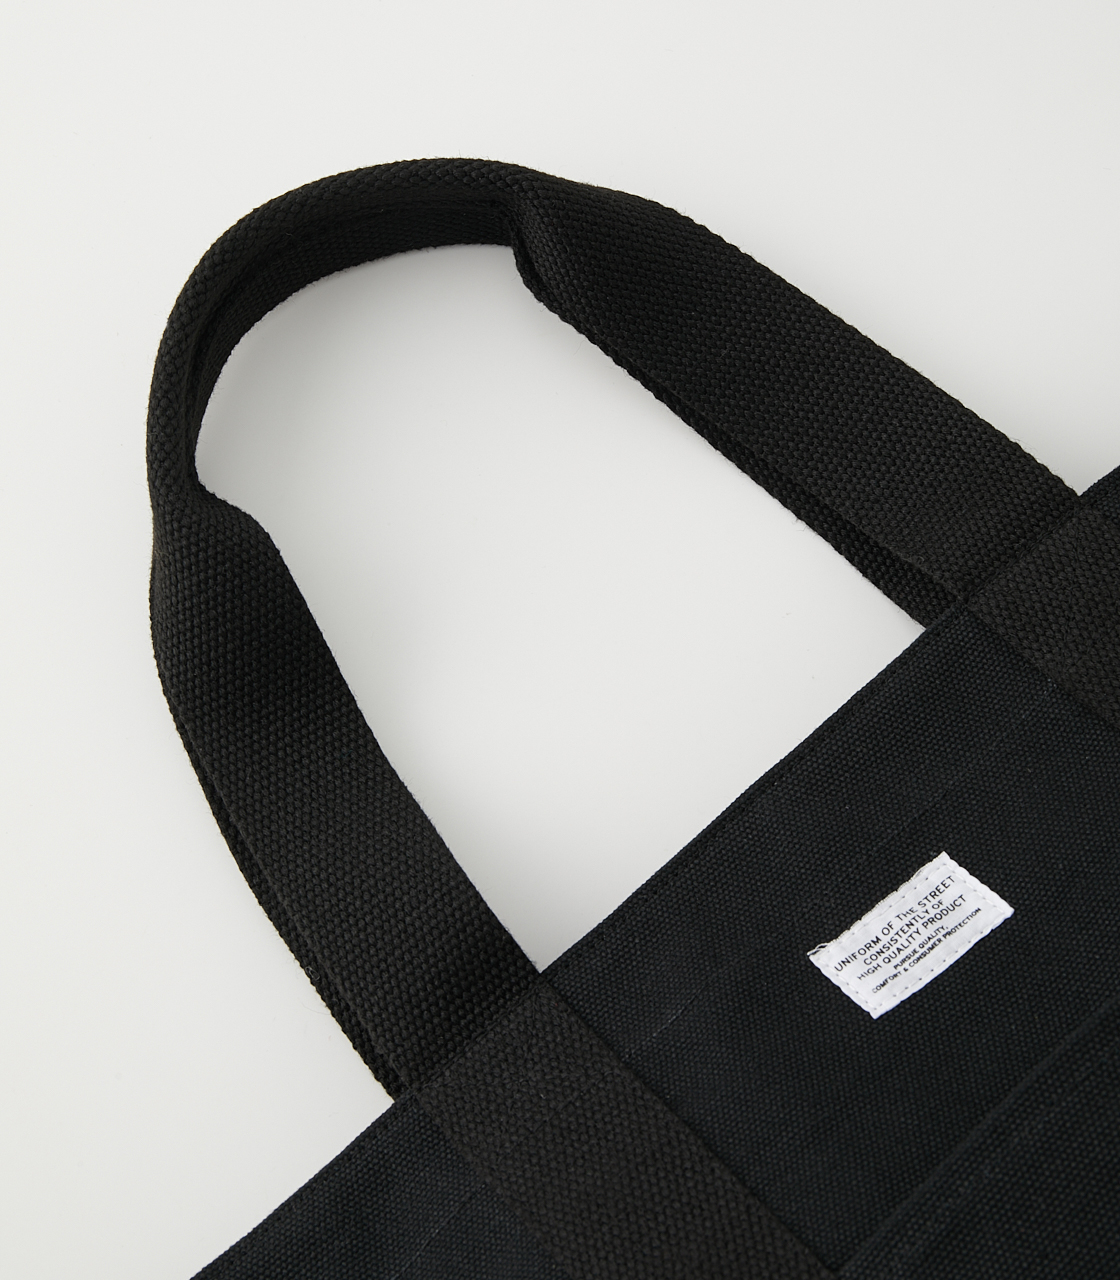 CANVAS TOTE BAG/キャンバストートバッグ 詳細画像 BLK 5